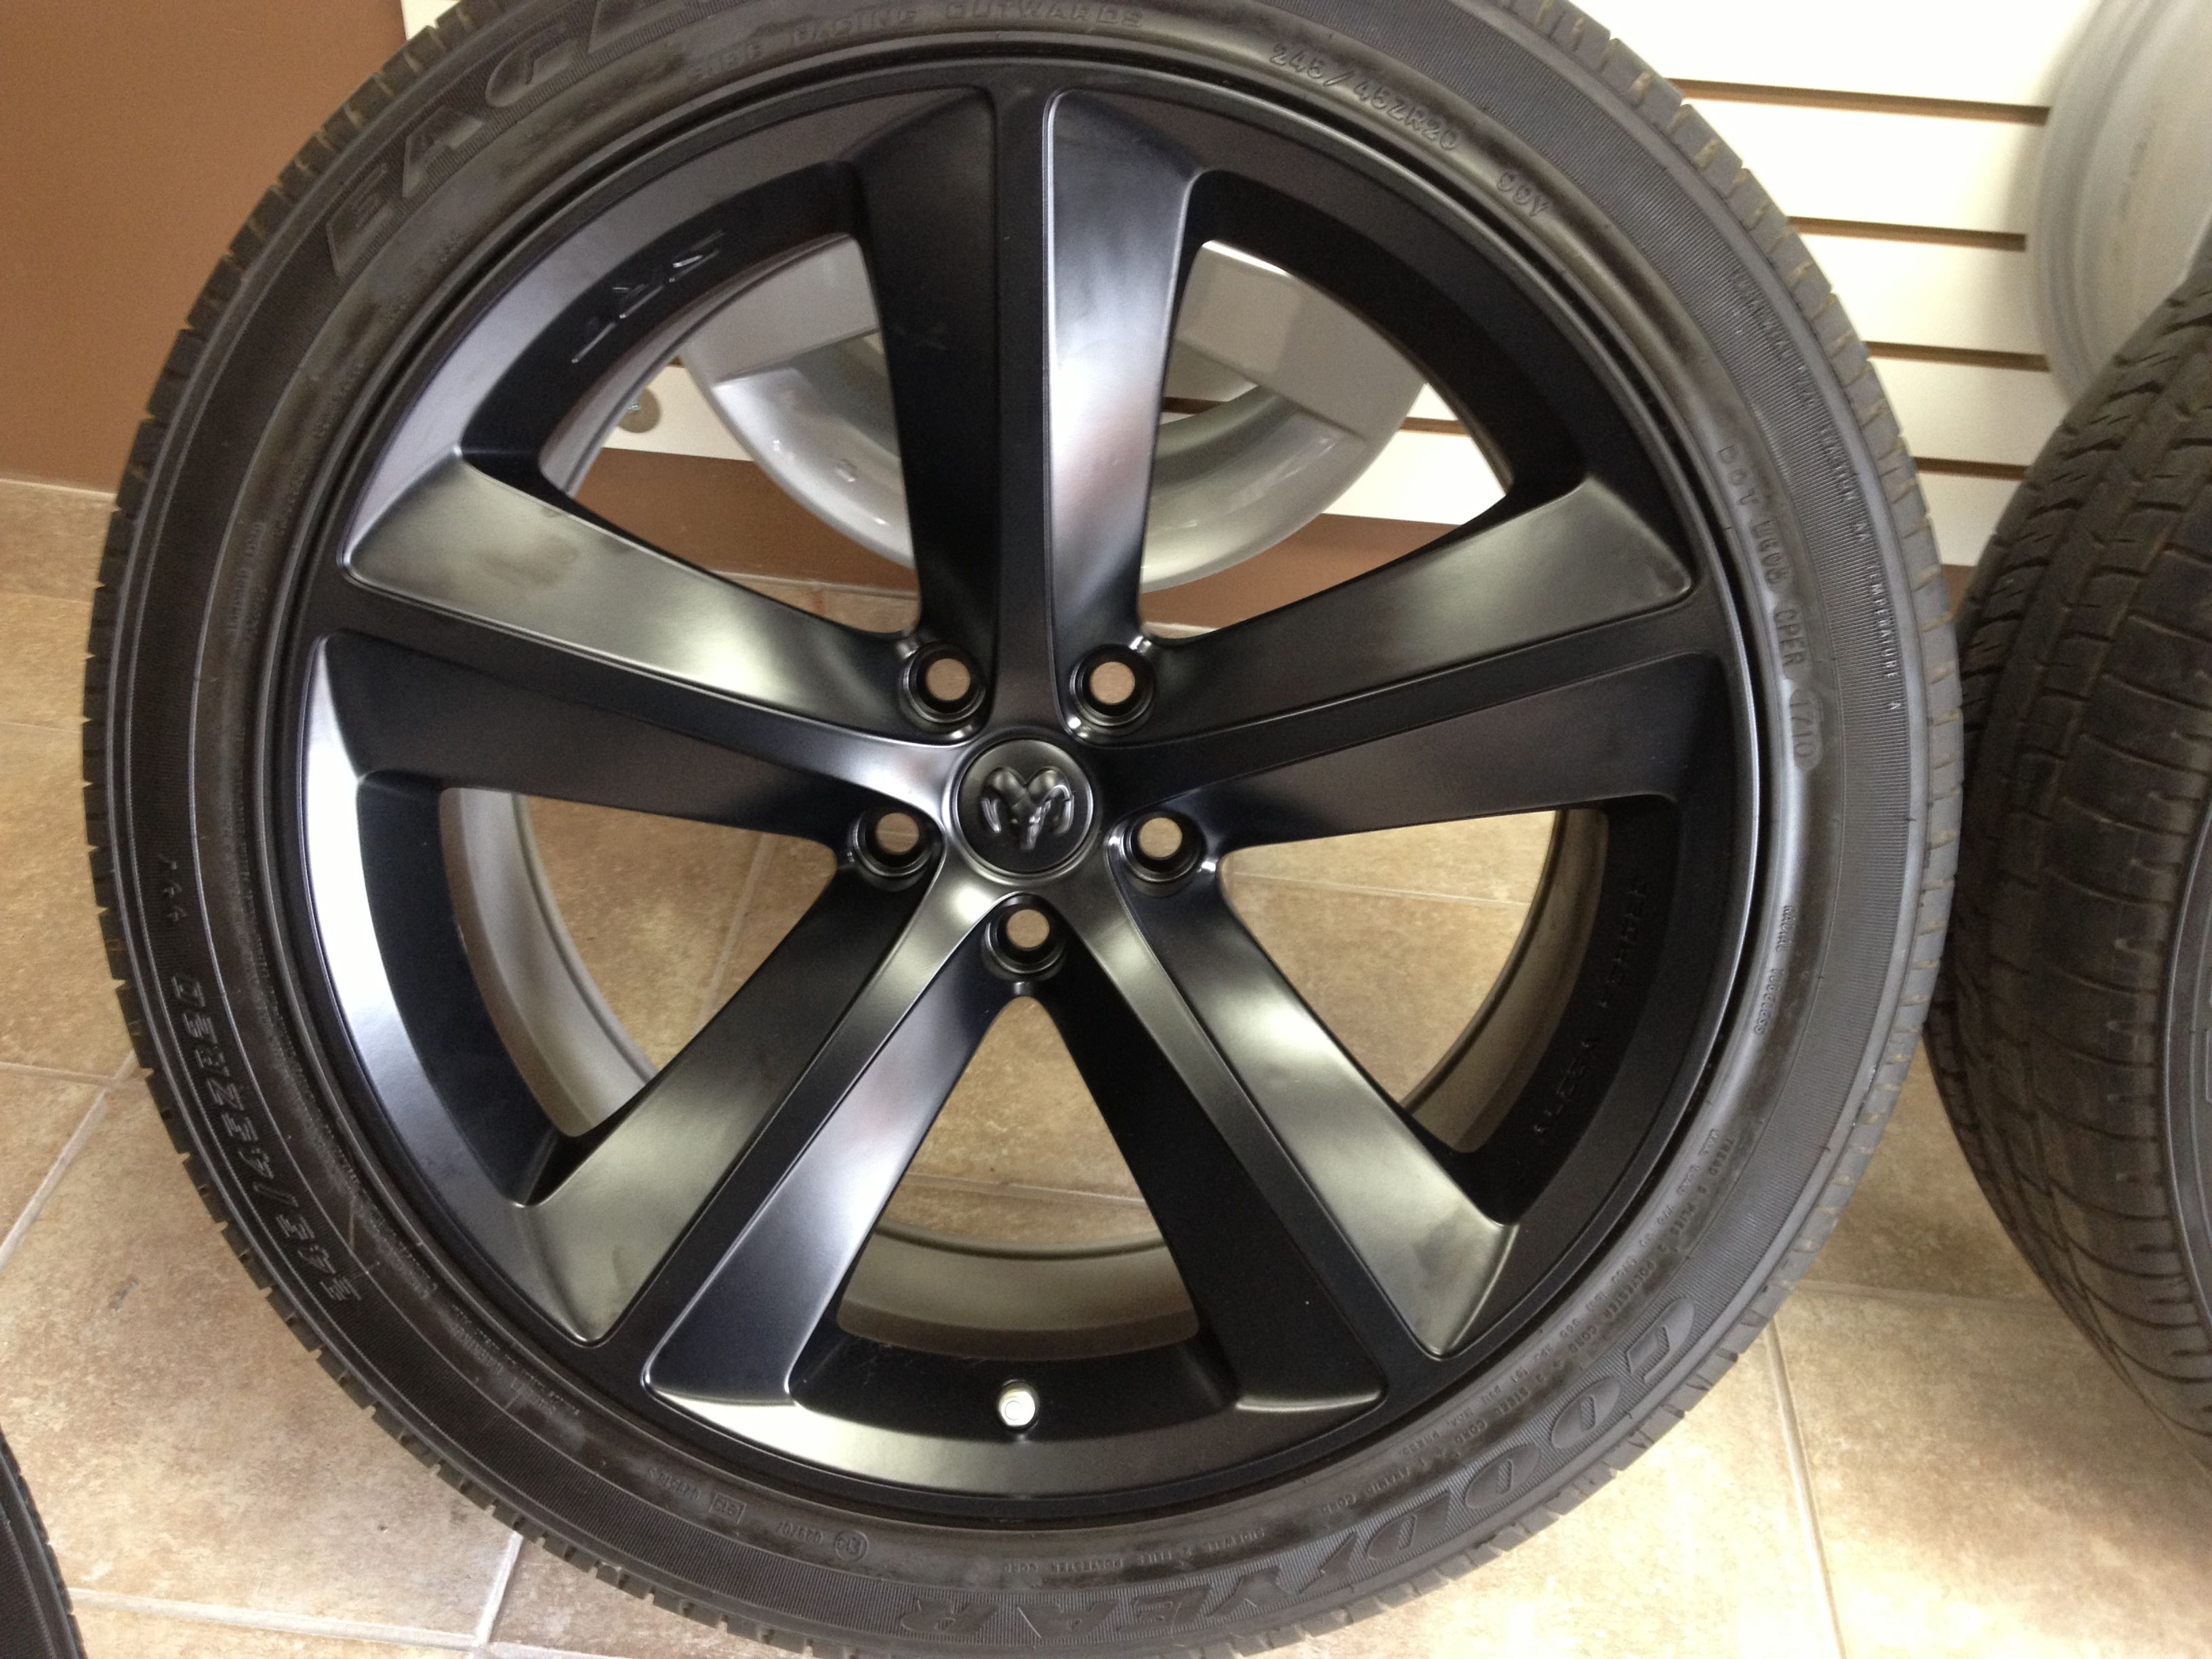 2010 Dodge Challenger Rims And Cntr Caps Painted Deep Black With A